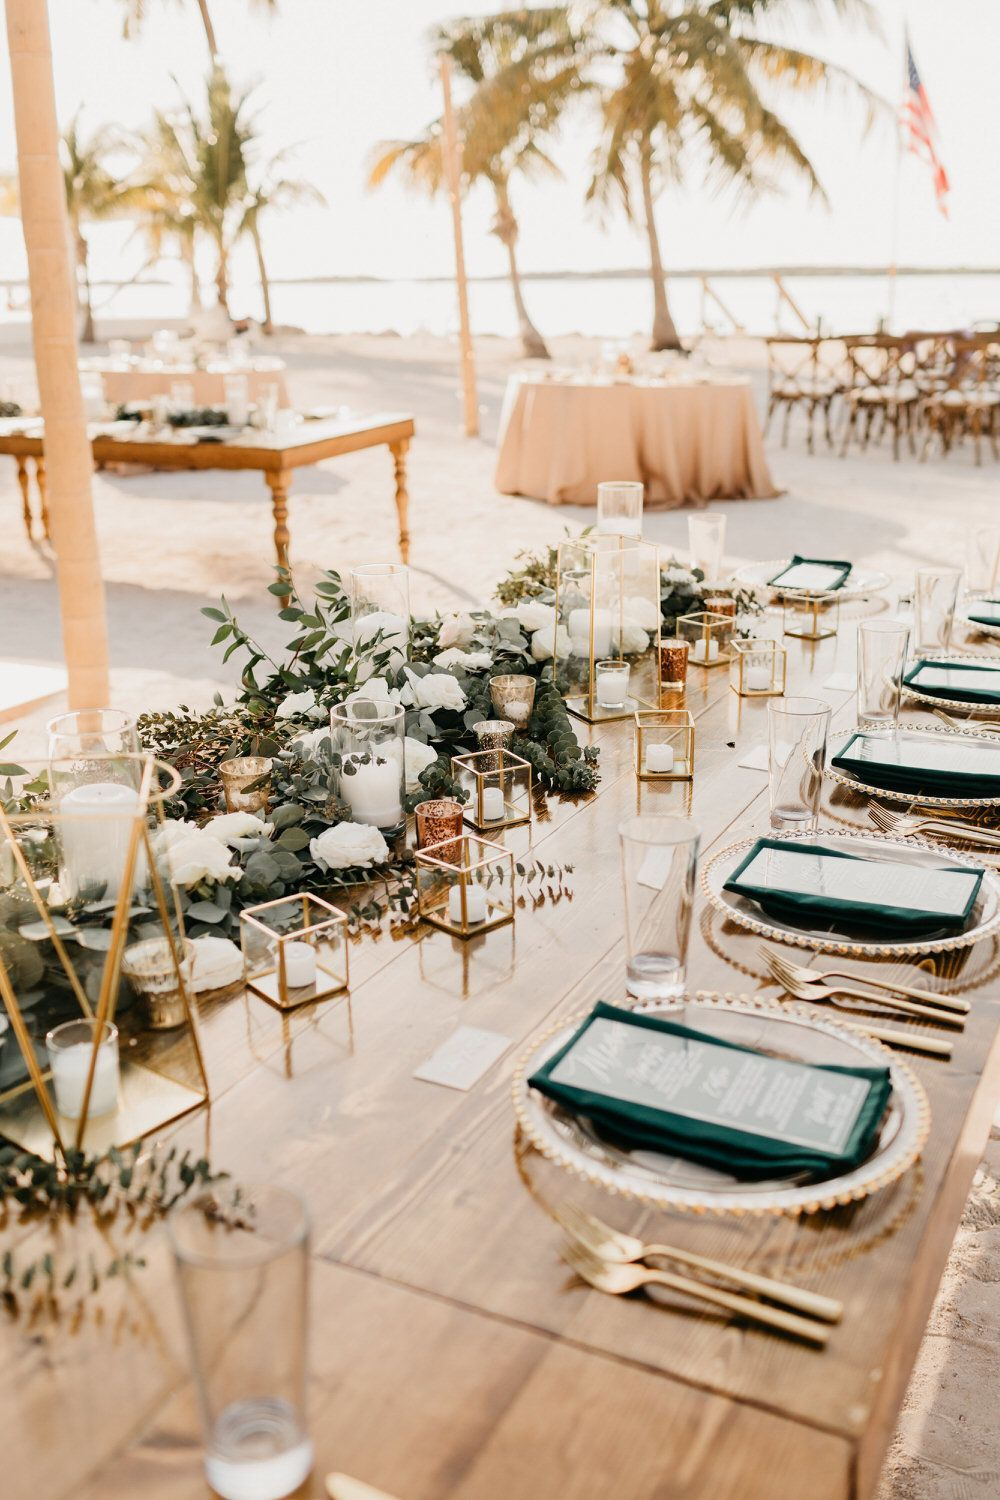 Tropical Glam Destination Wedding in the Florida Keys